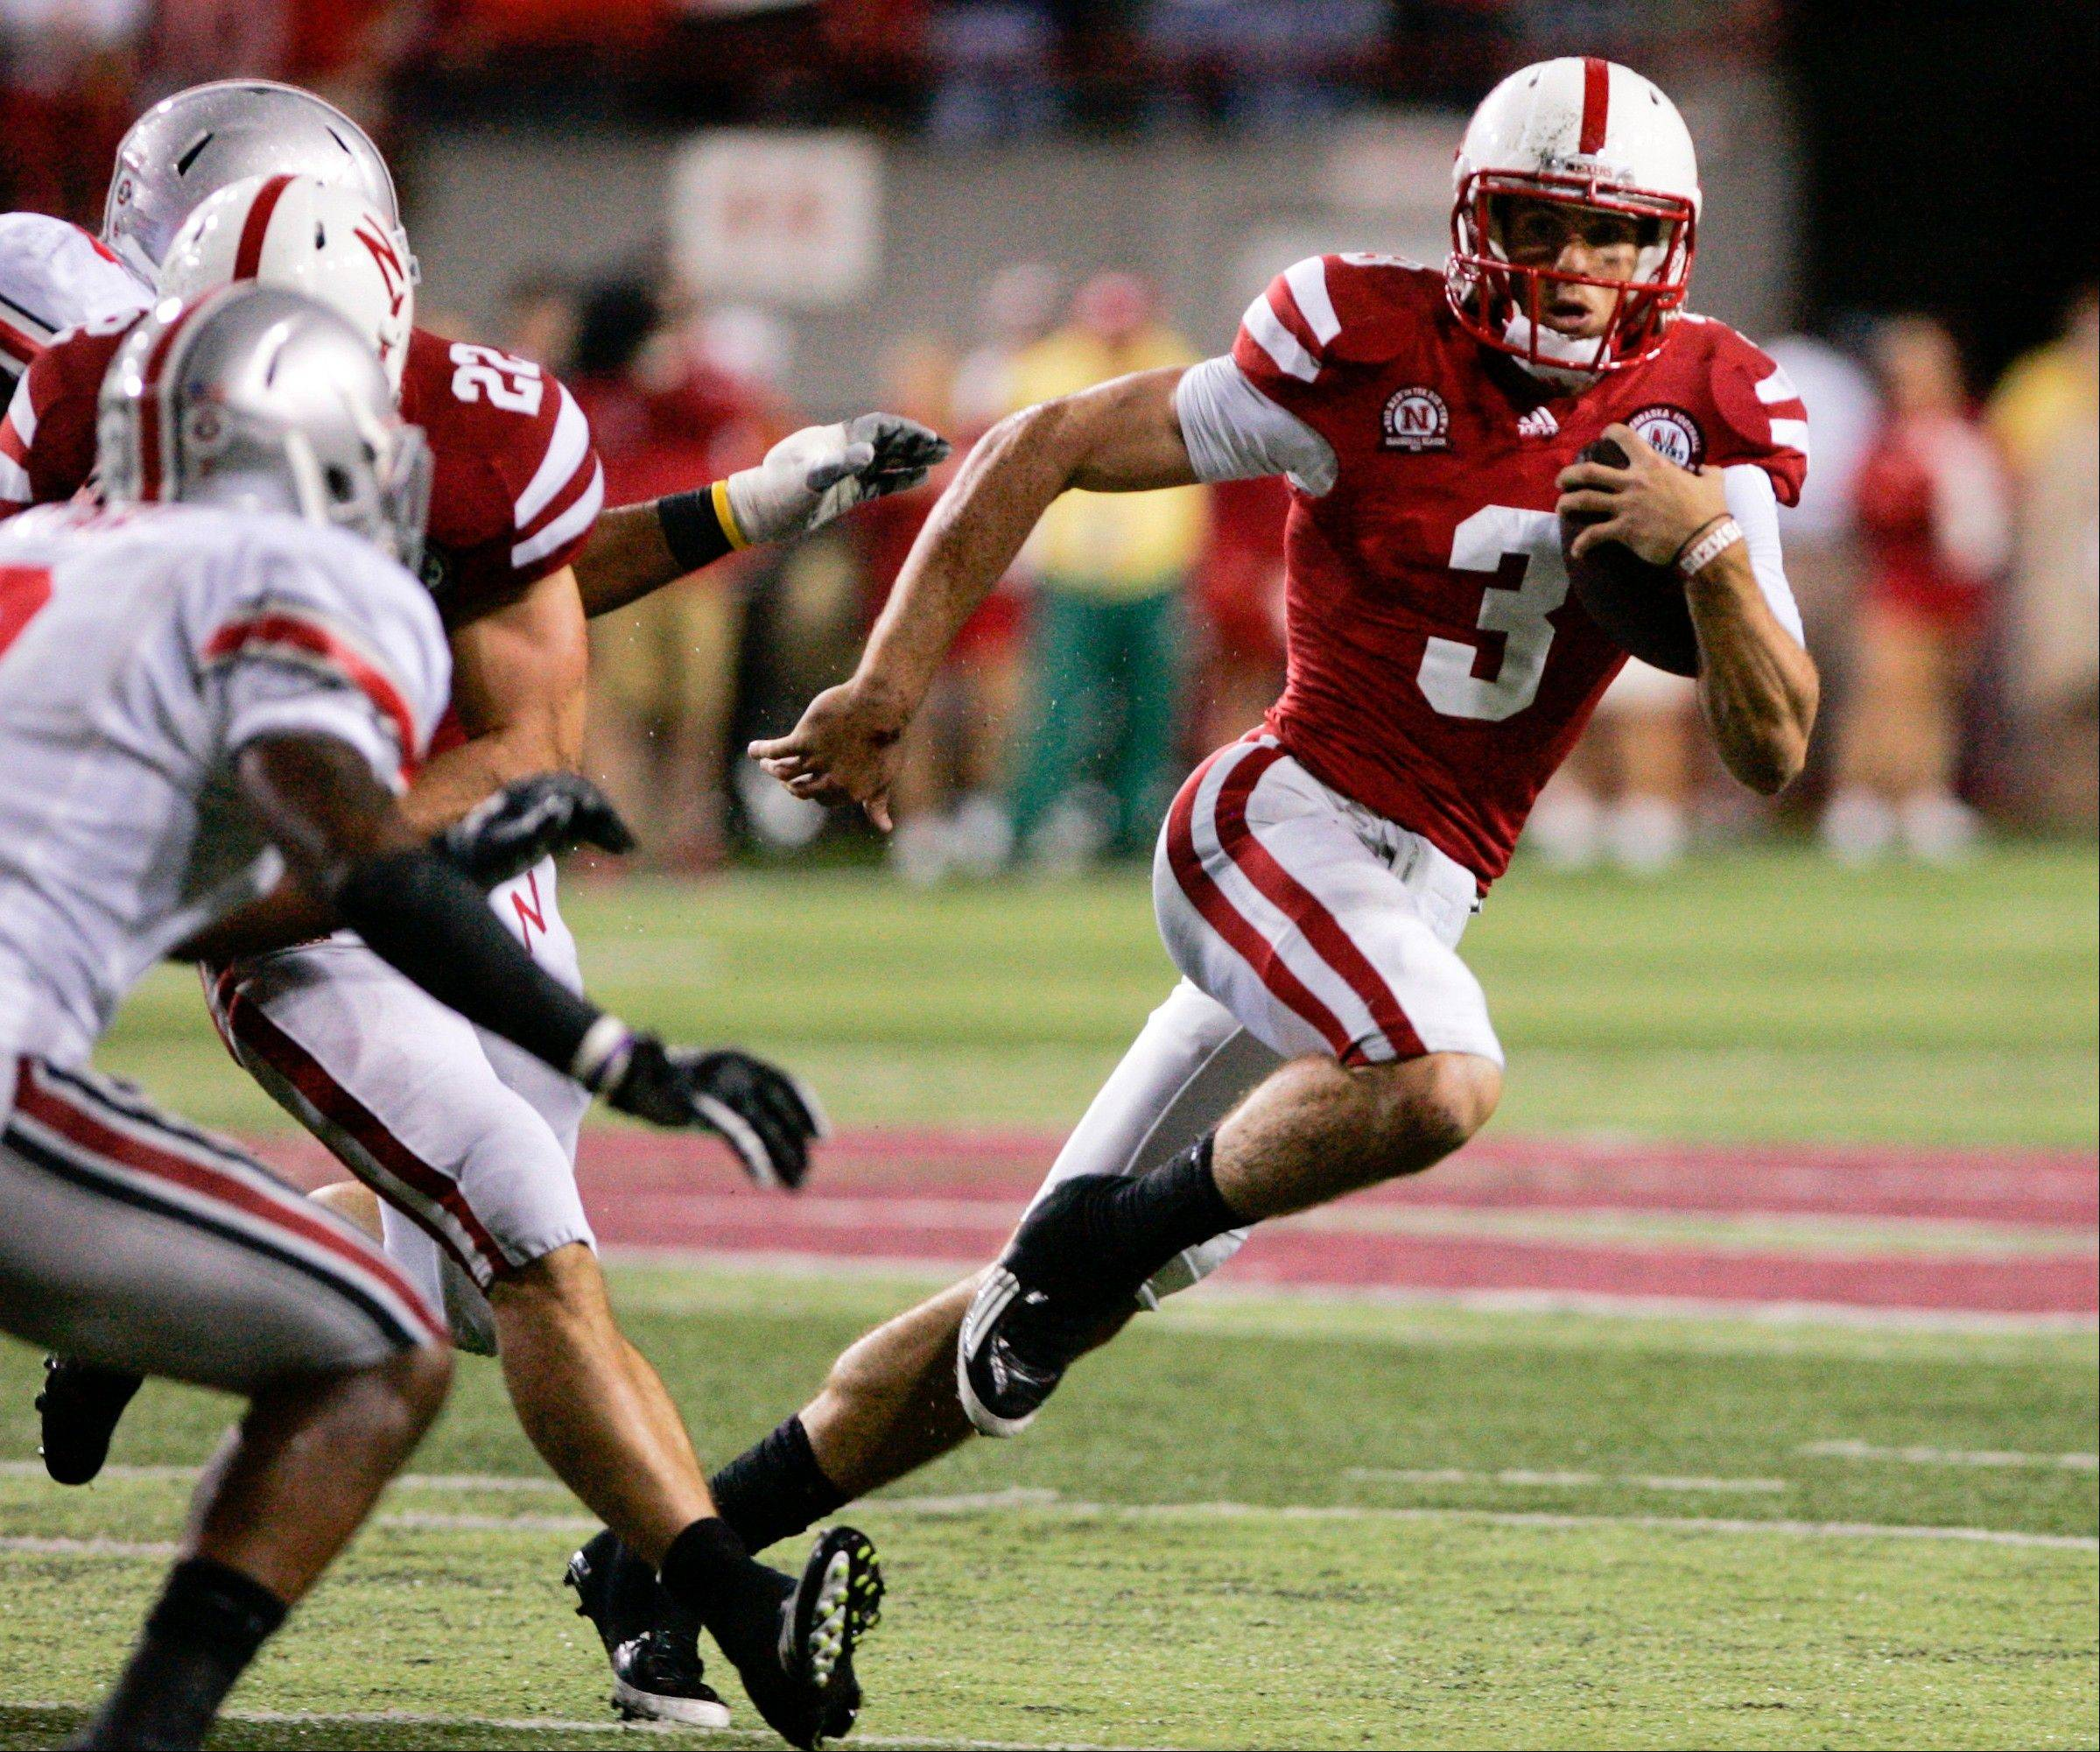 Nebraska quarterback Taylor Martinez carries the ball against Ohio State last October in Lincoln, Neb.